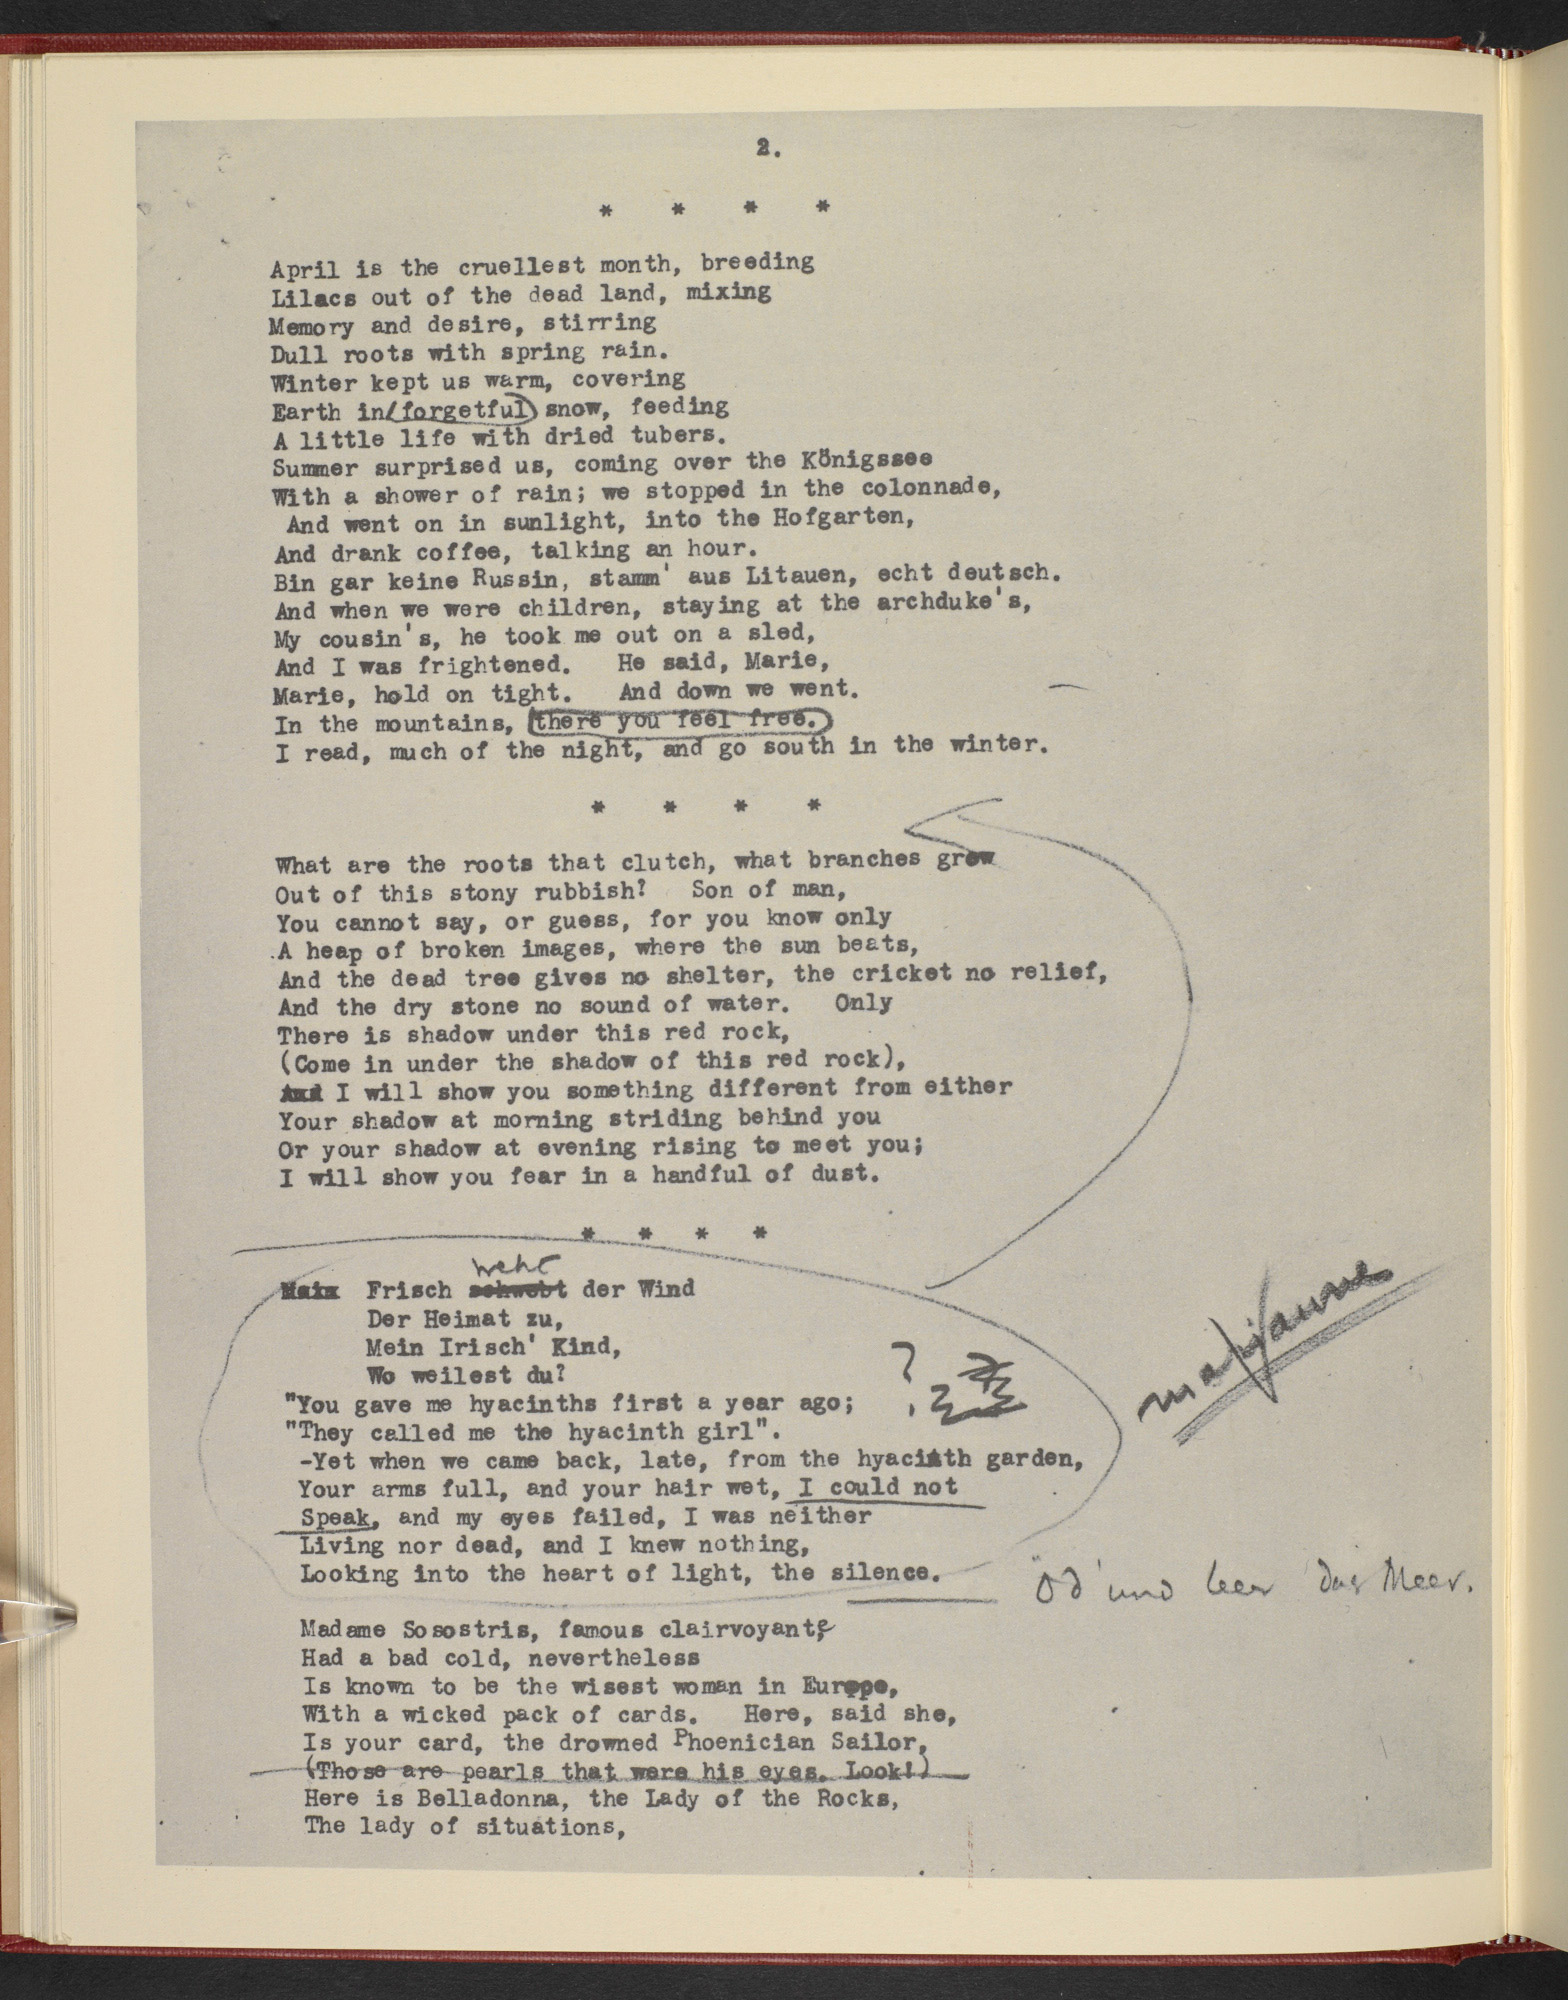 Manuscript of T S Eliot's The Waste Land, with Ezra Pound's annotations